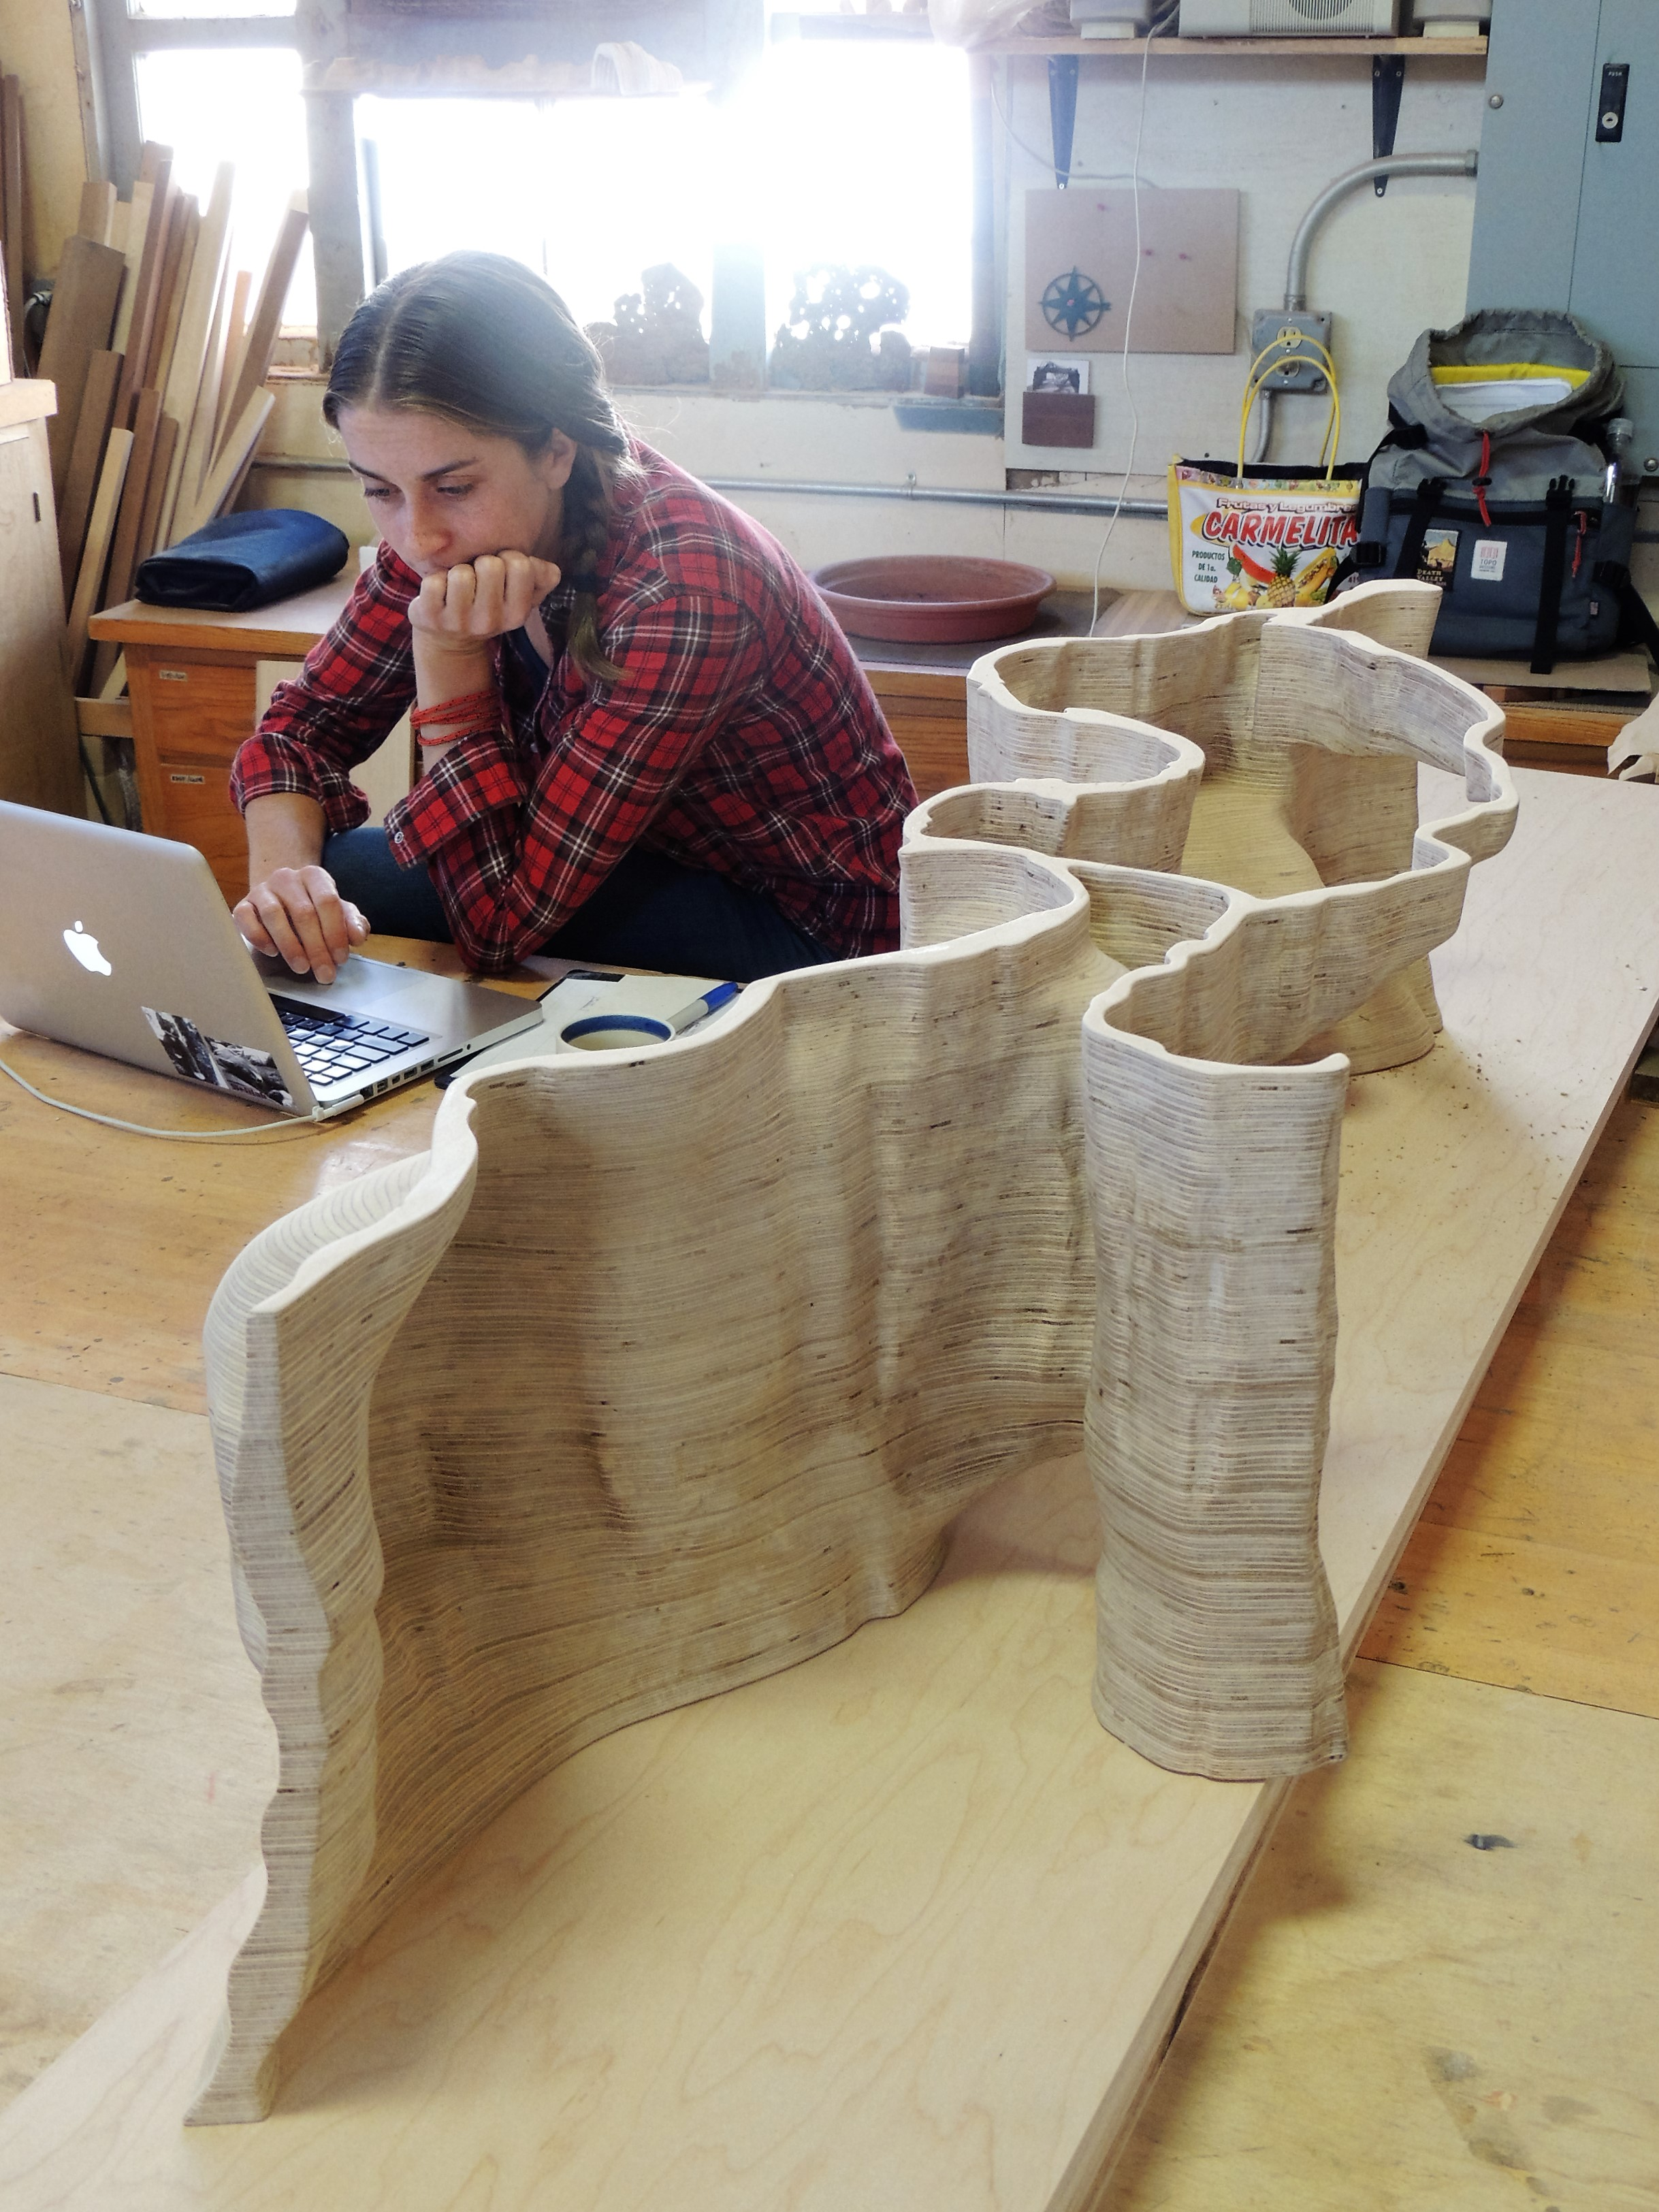 Adrien Segal, artist and teacher working on a new project